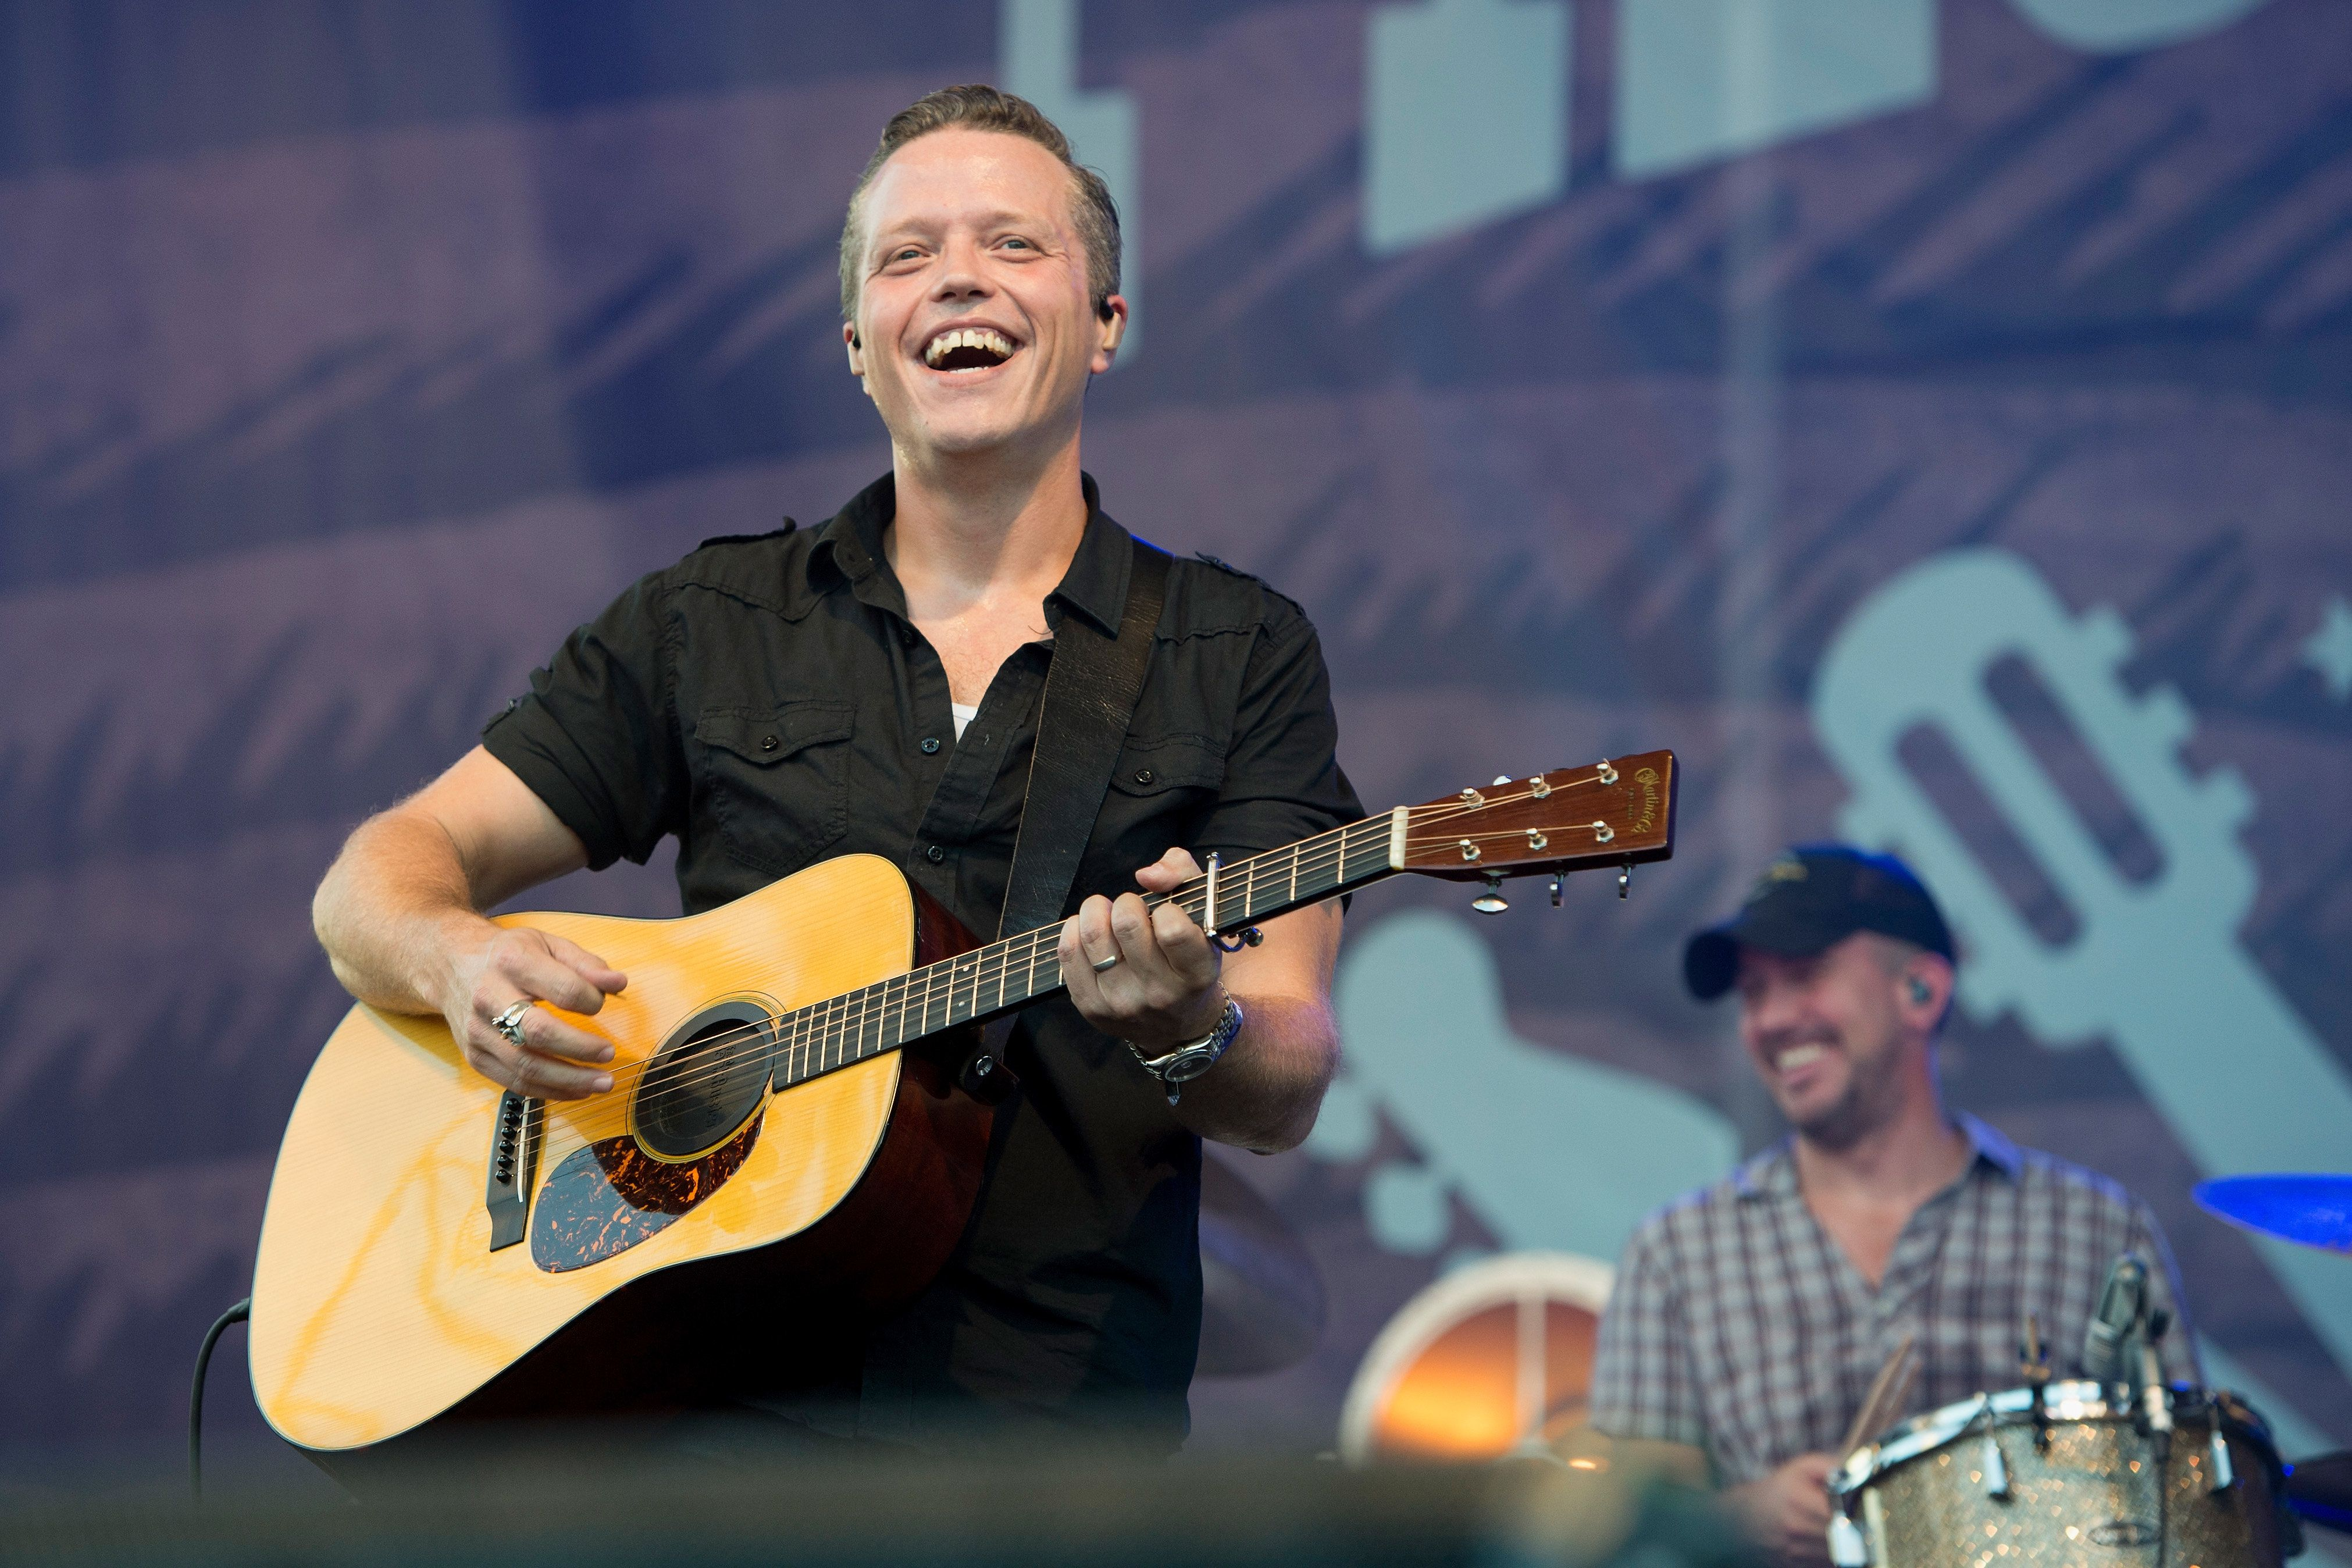 FRANKLIN, TN - SEPTEMBER 25:  Jason Isbell and Chad Gamble perform on September 25, 2016 in Franklin, Tennessee.  (Photo by Erika Goldring/Getty Images for Pilgrimage Music & Cultural Festival)